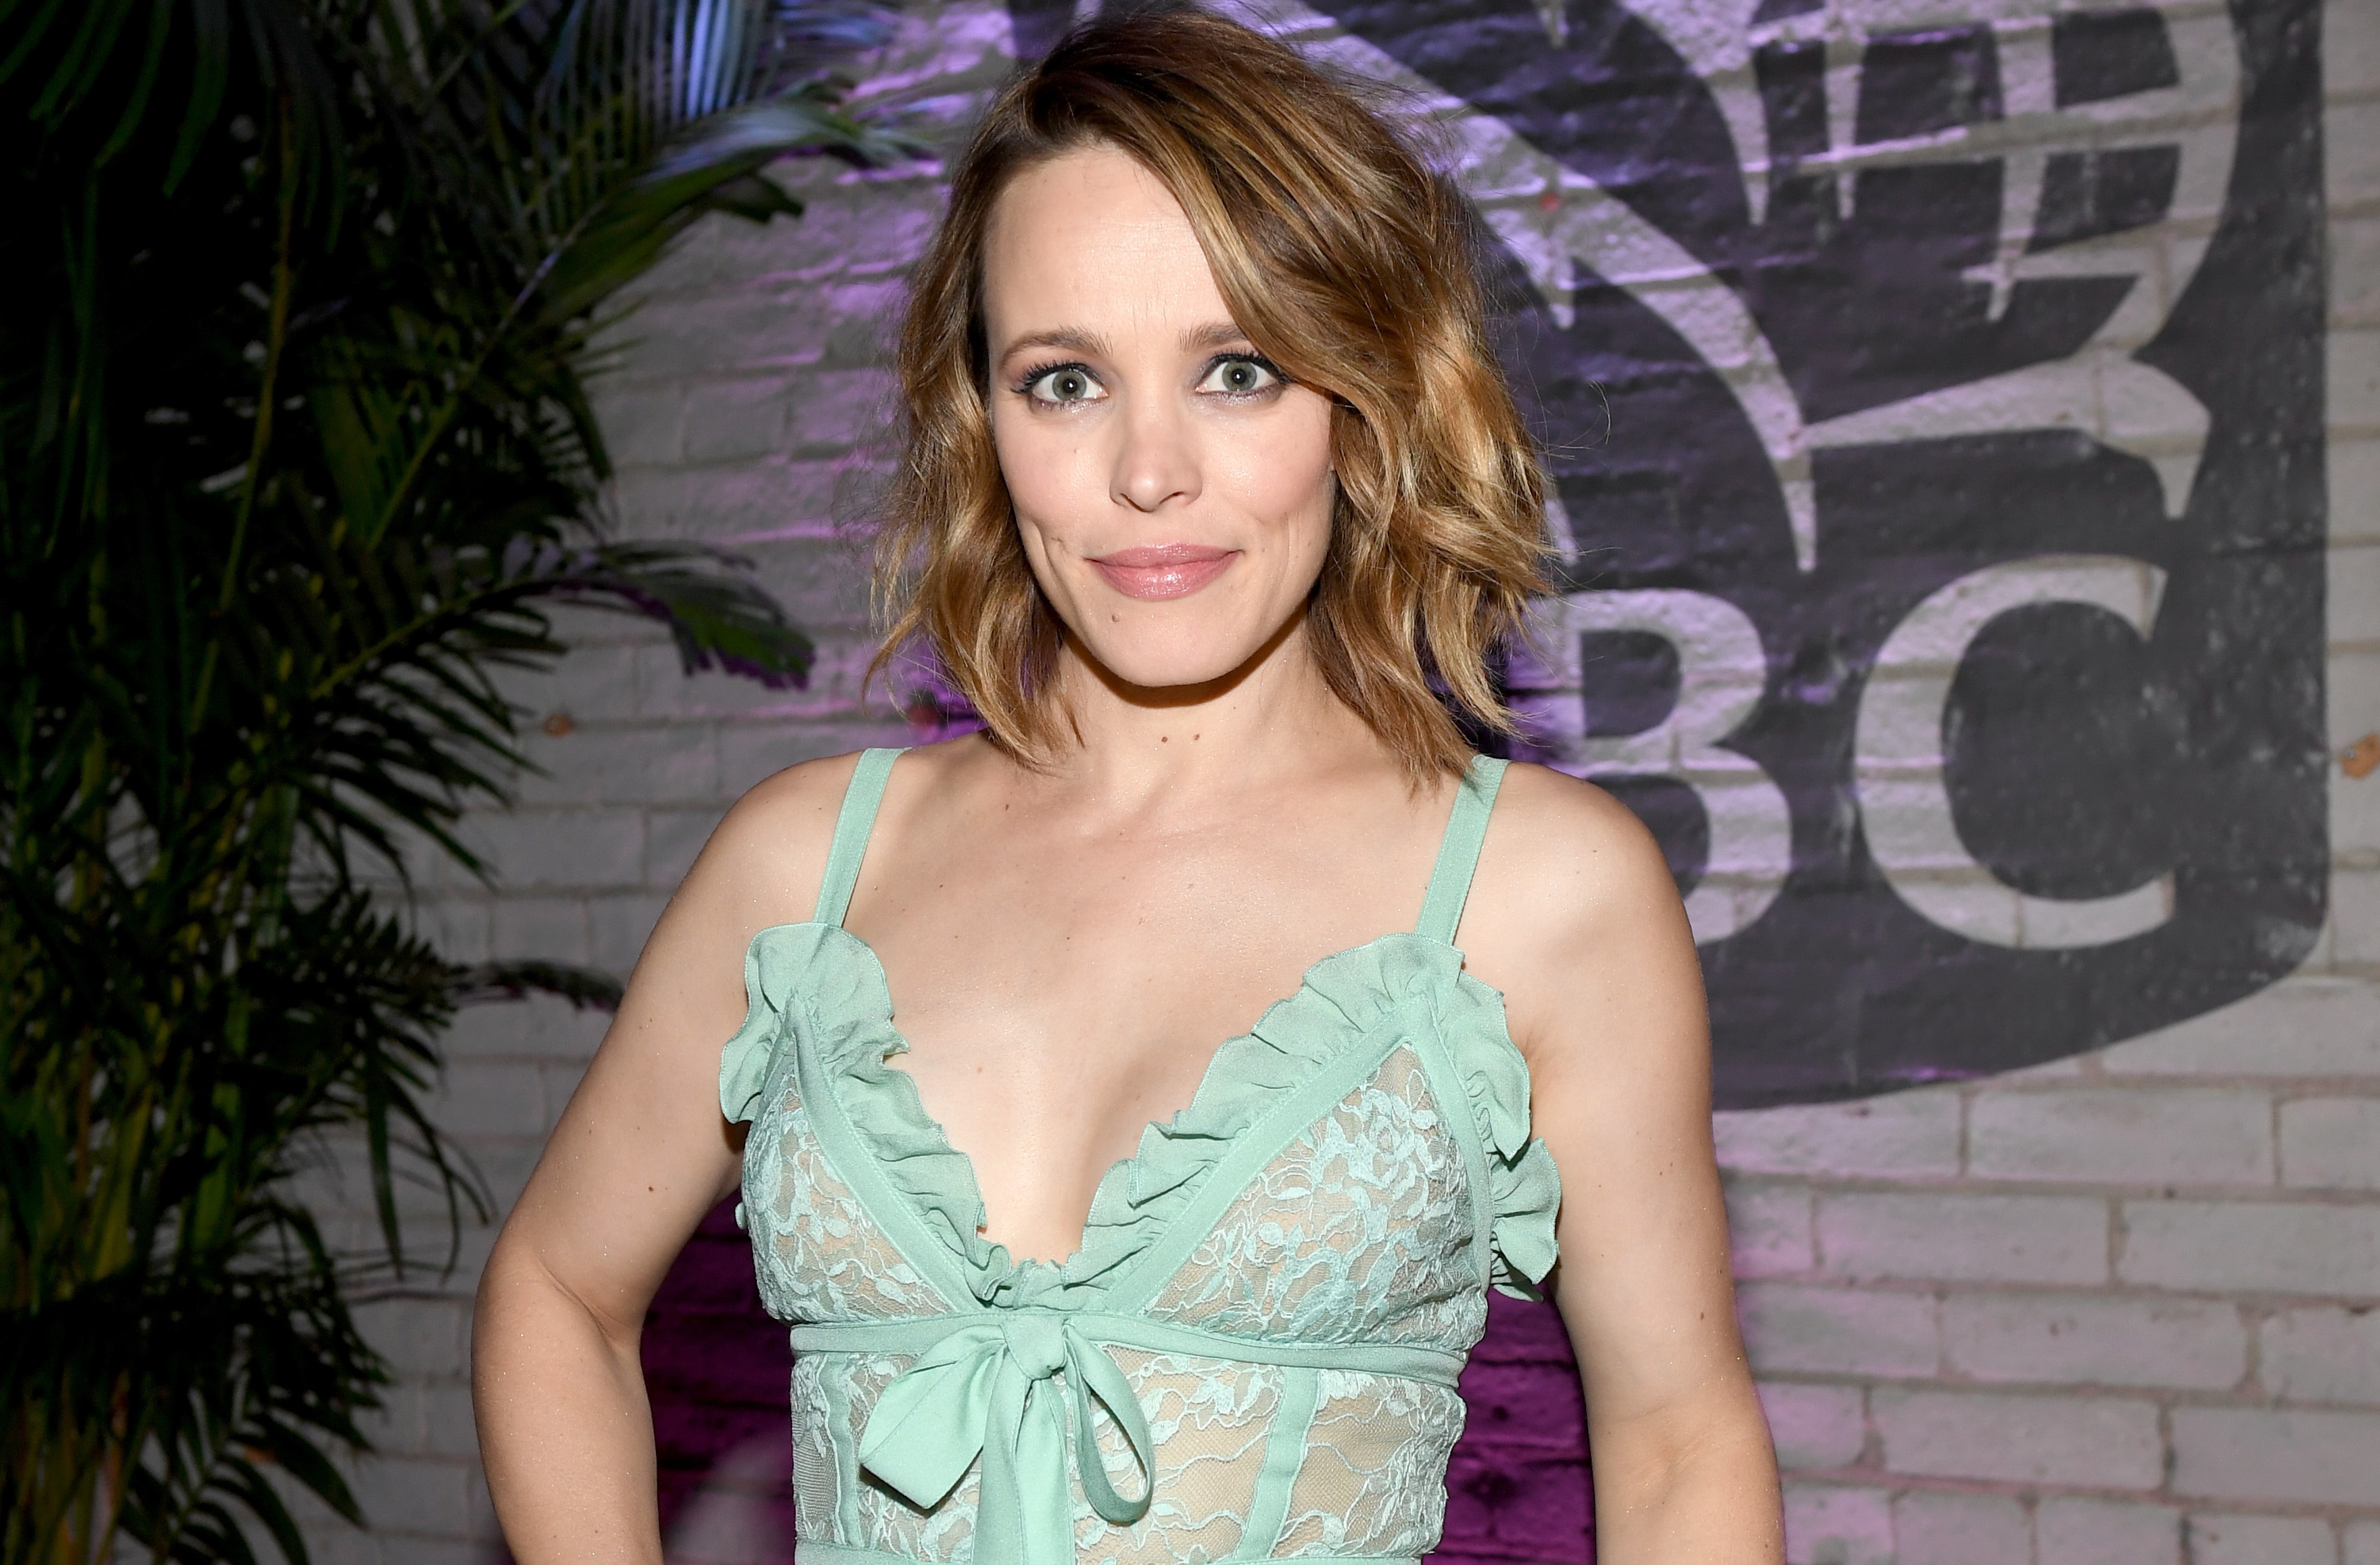 Rachel-McAdams-Wiki-Biography-Age-Height-Weight-Profile-Body-Measurement